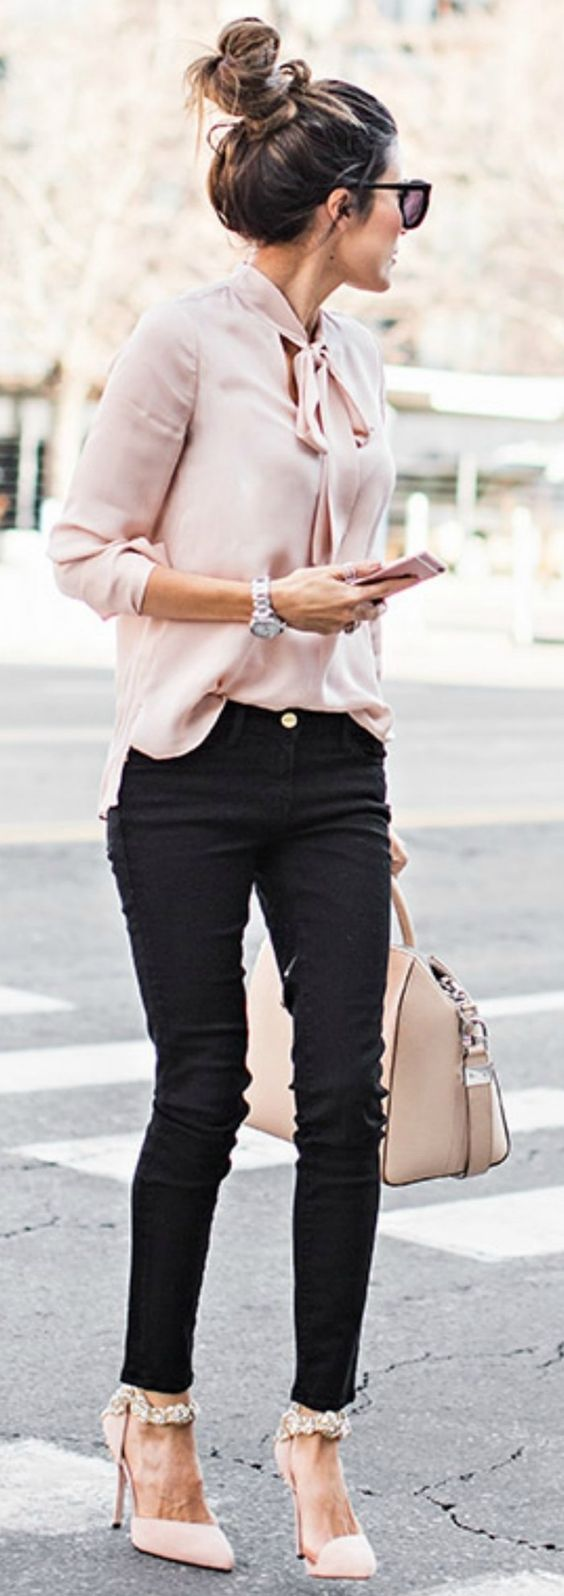 Summer Office Outfit   winter wardrobe blush pink christine andrew gorgeous silky blouse matching heels bag top shopbop jeans nordstrom heels aminah abdul 86